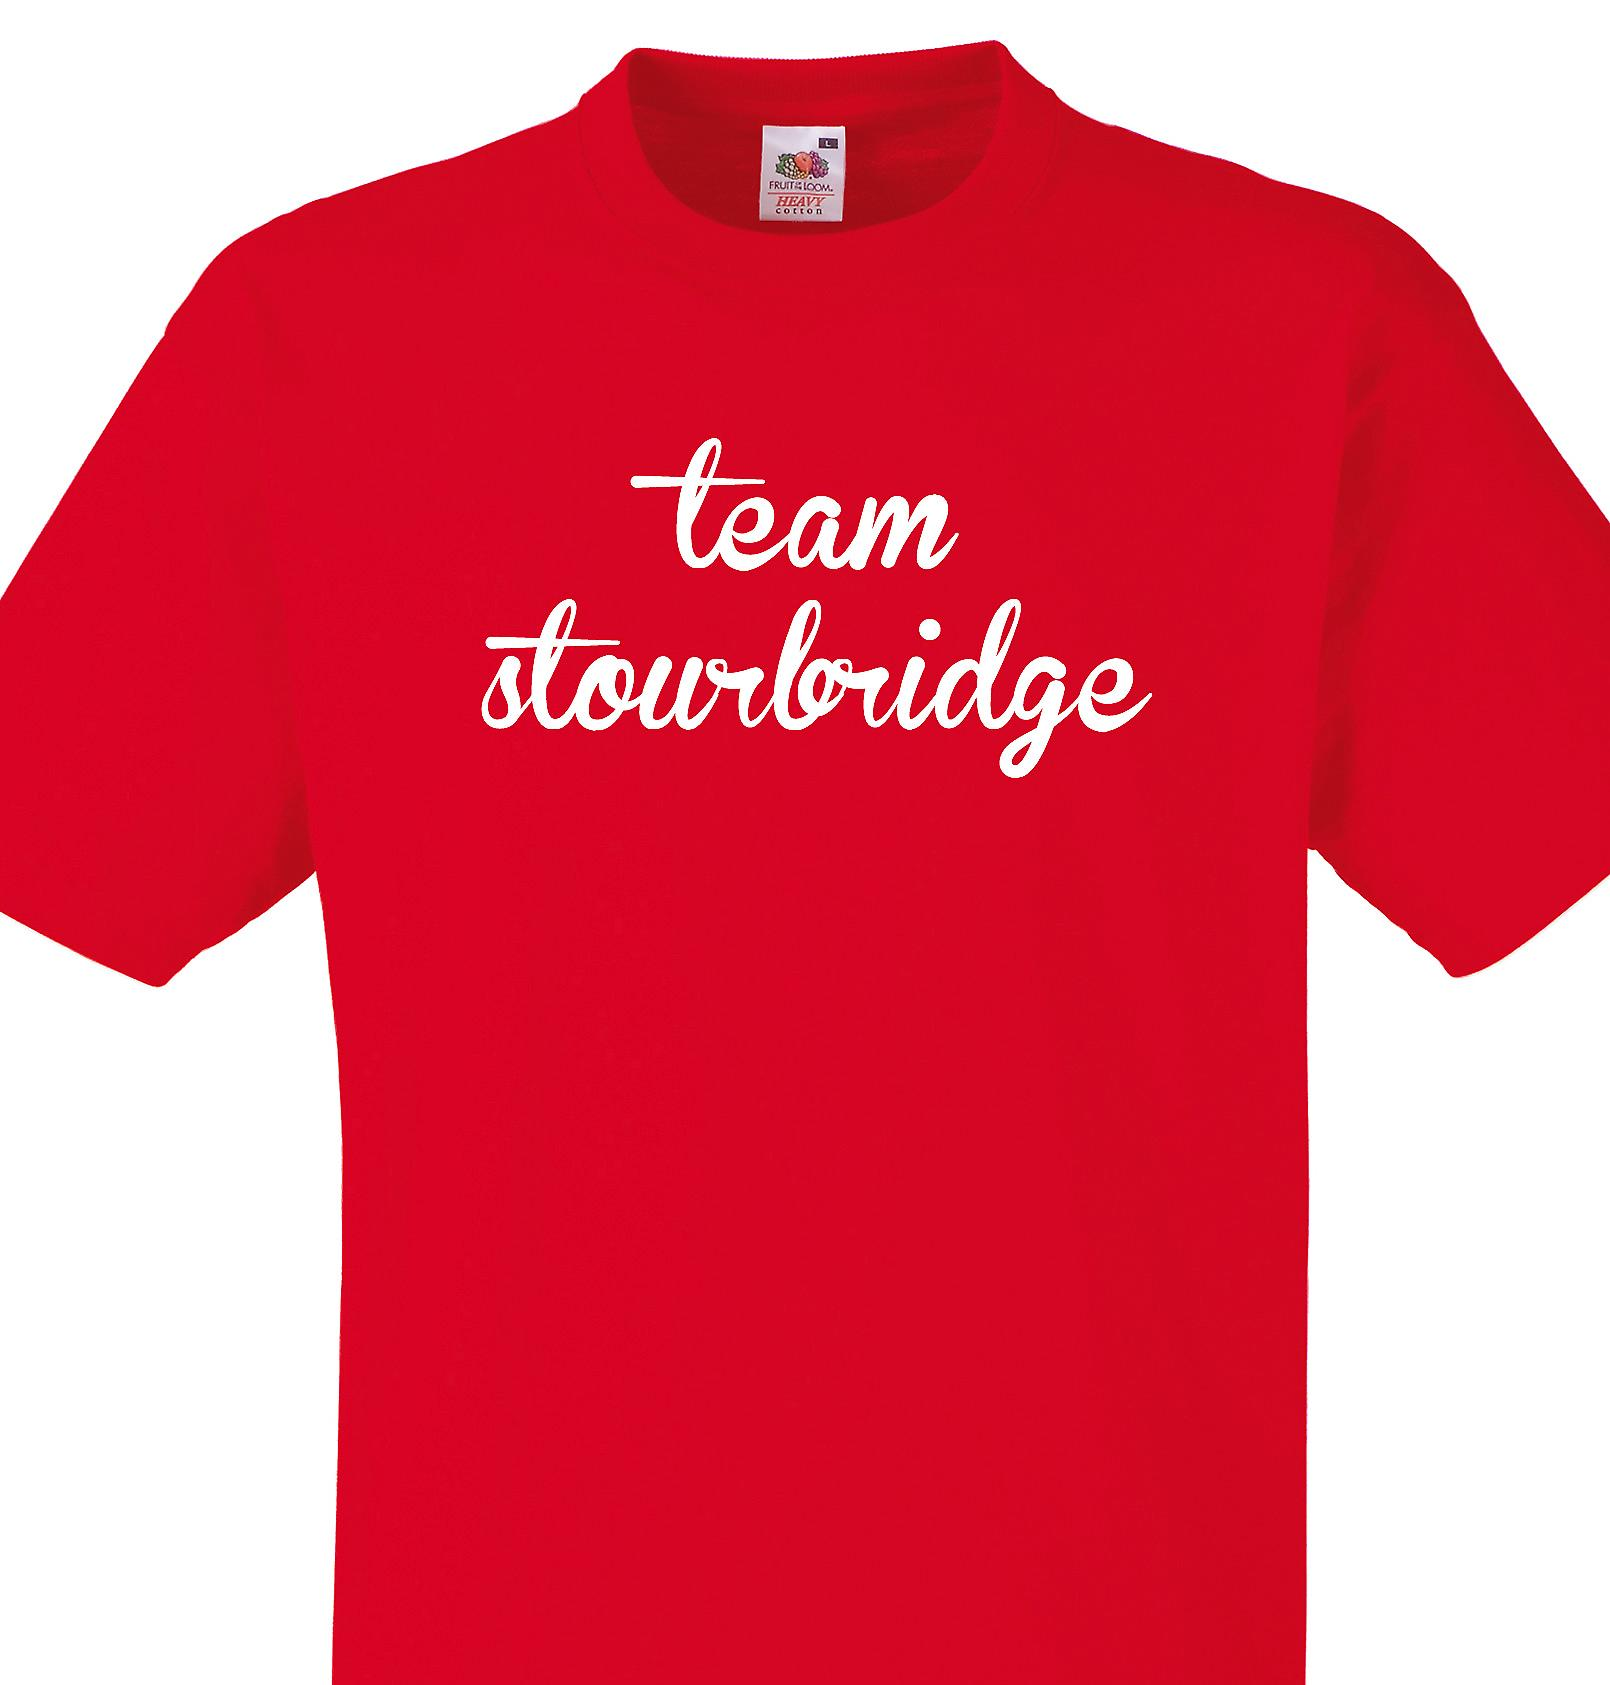 Team Stourbridge Red T shirt